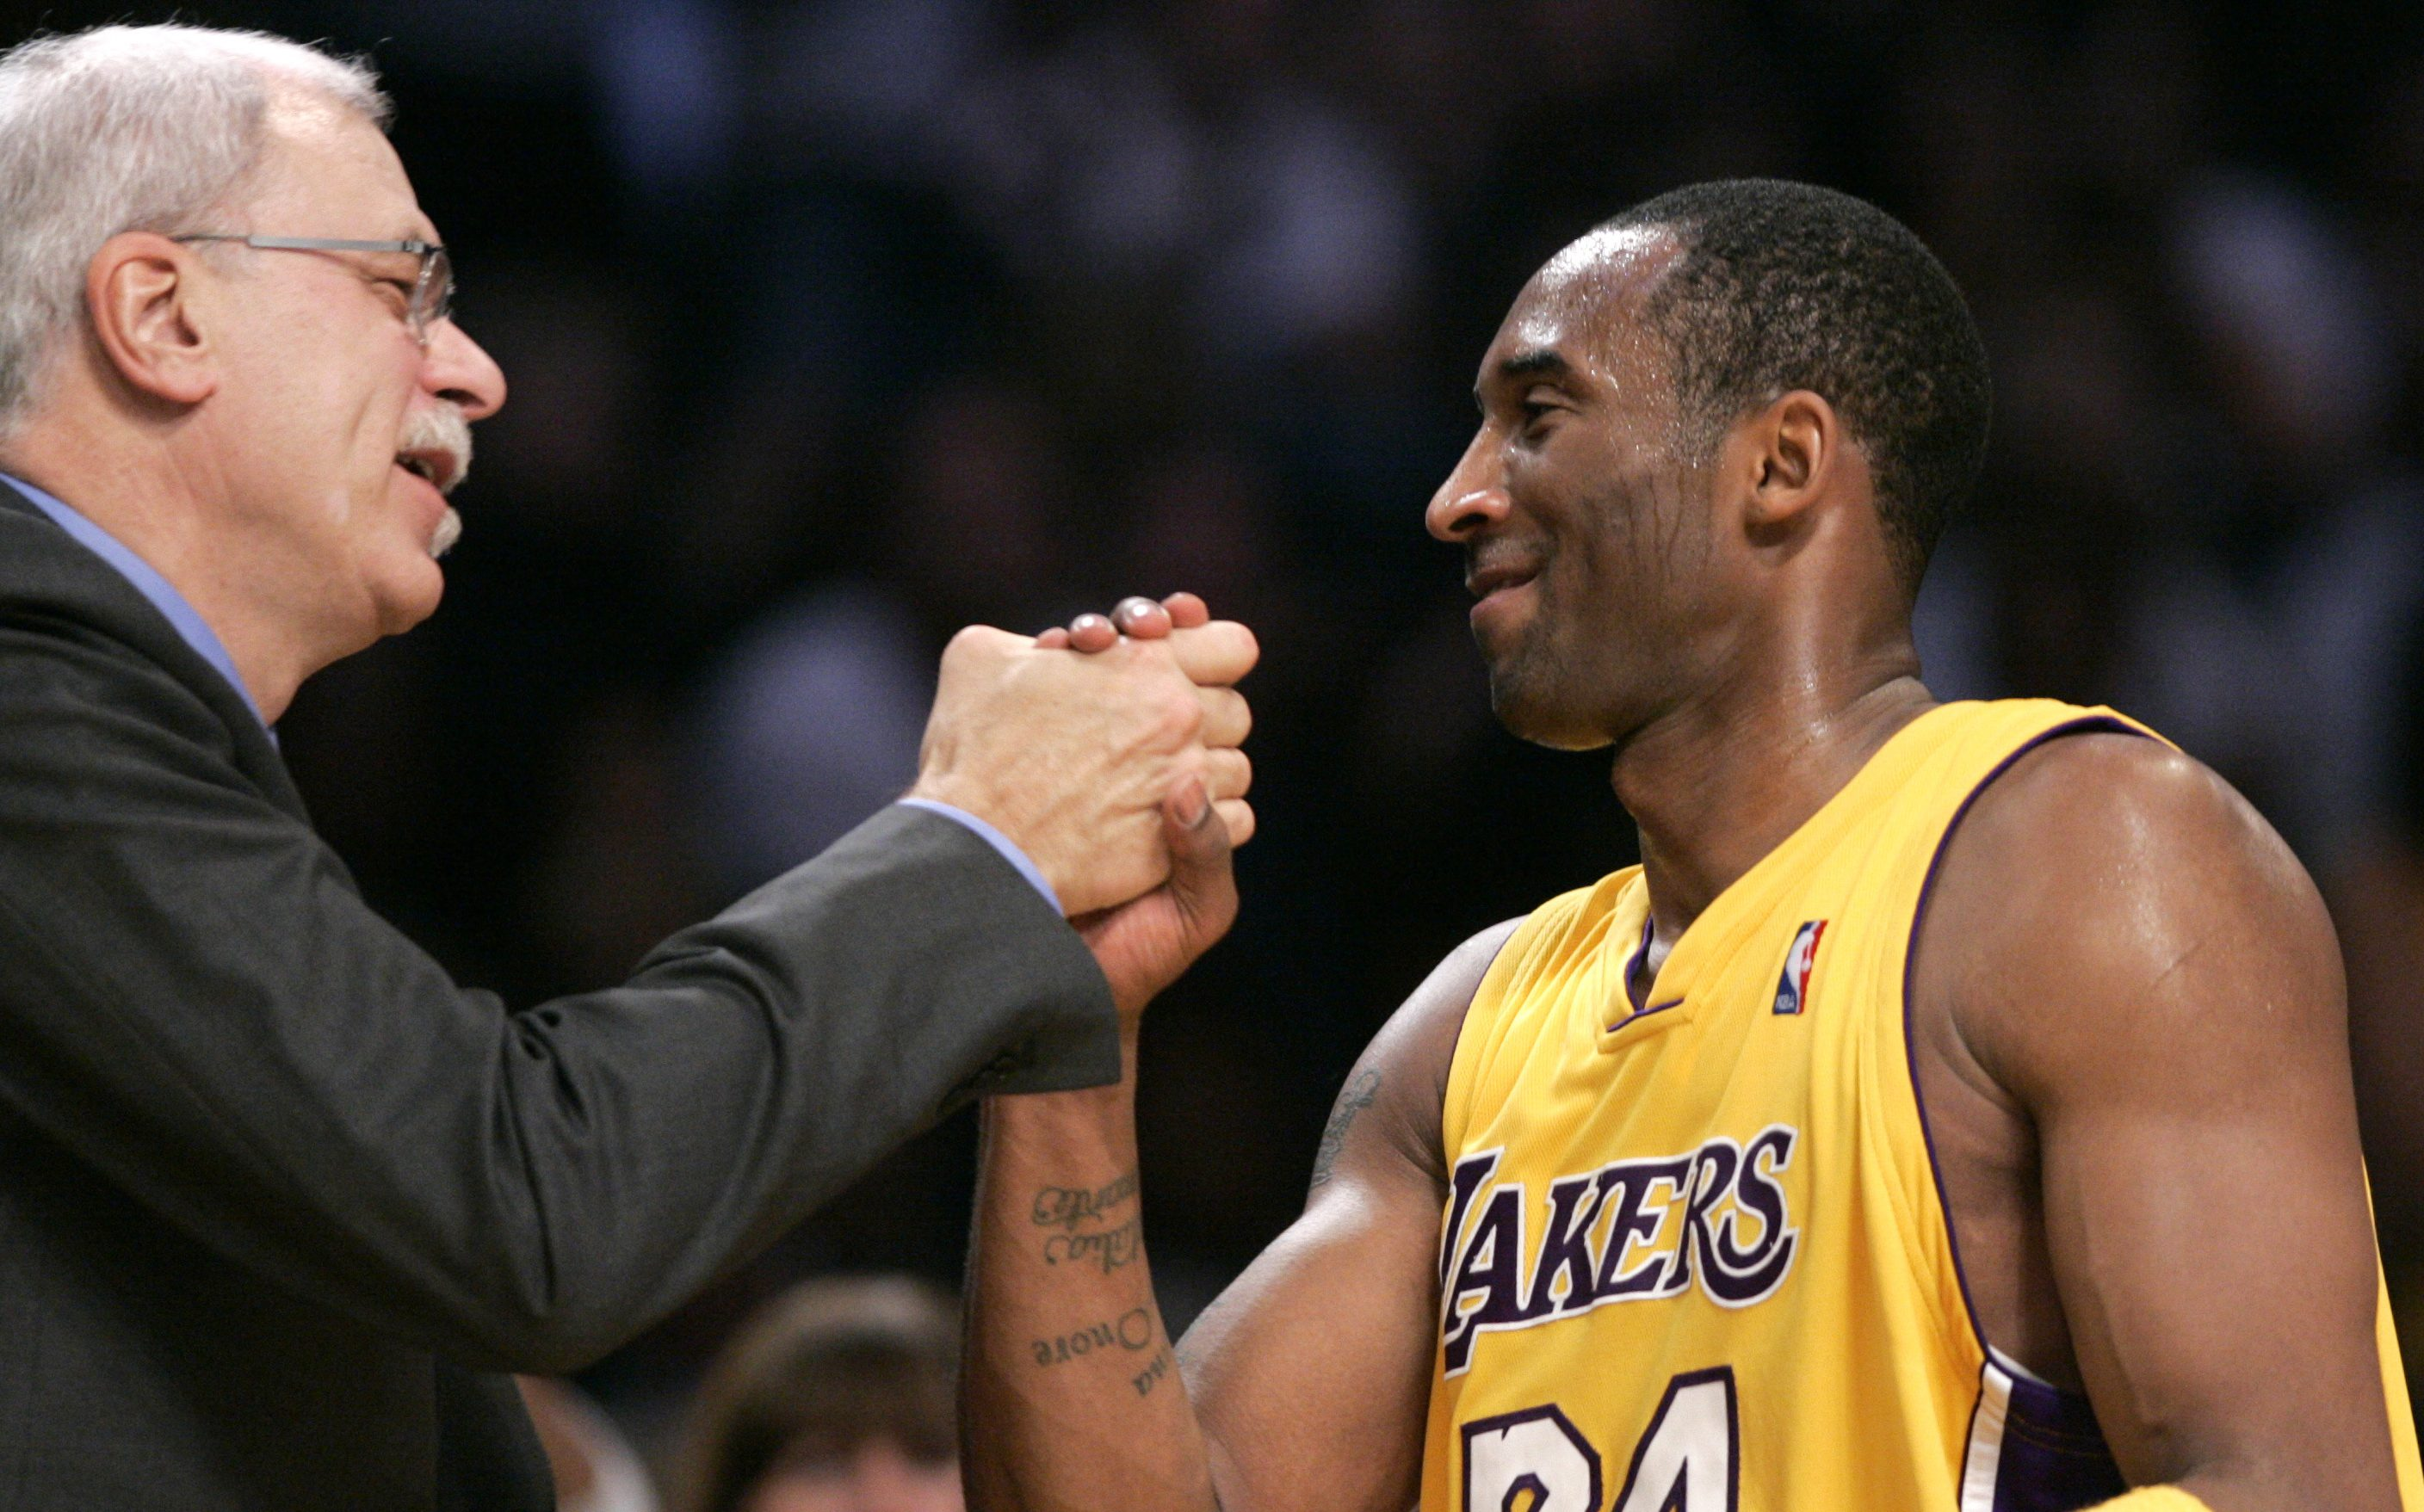 Los Angeles Lakers' Kobe Bryant (R) is congratulated by coach Phil Jackson after leaving their NBA game against the Utah Jazz having scored 52 points, in Los Angeles